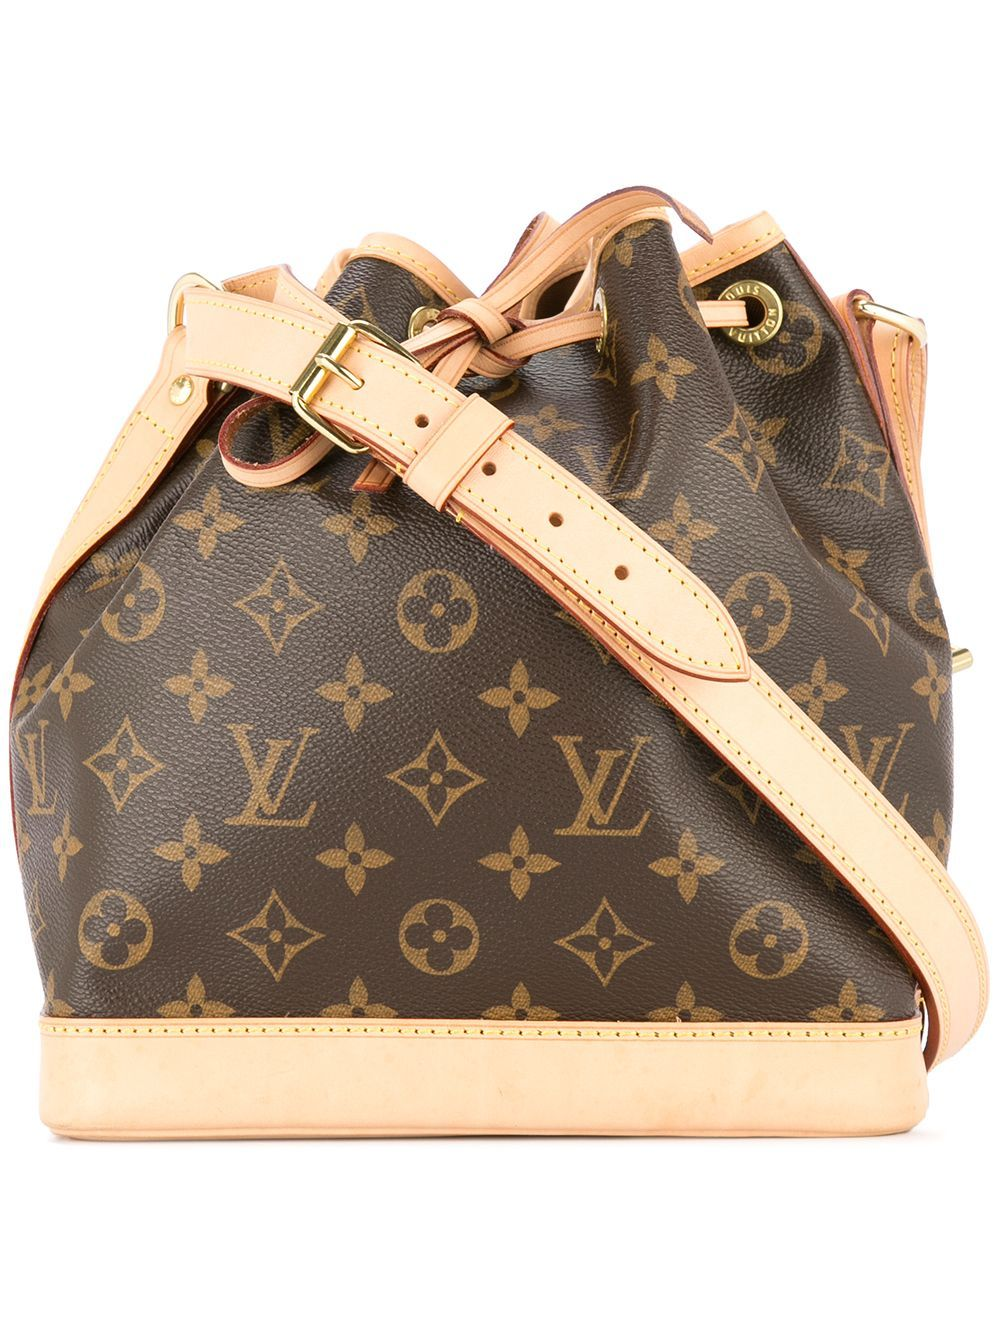 Pre Owned Louis Vuitton Pre Owned Noe Bb In Brown Modesens Louis Vuitton Pre Owned Louis Vuitton Vuitton